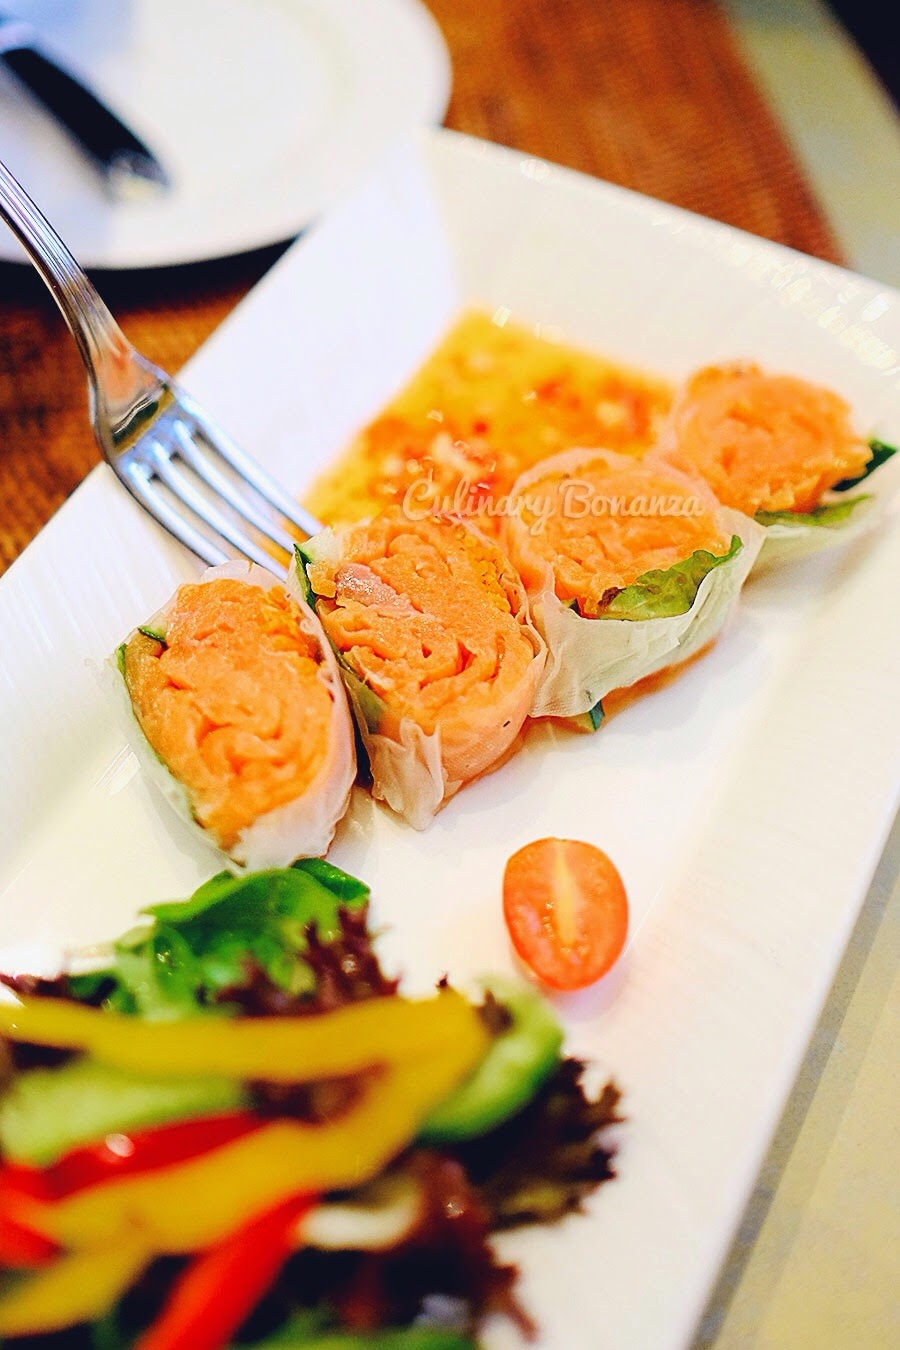 Vietnamese Salmon Roll at Jakarta Restaurant, The Dharmawangsa (www.culinarybonanza.com)